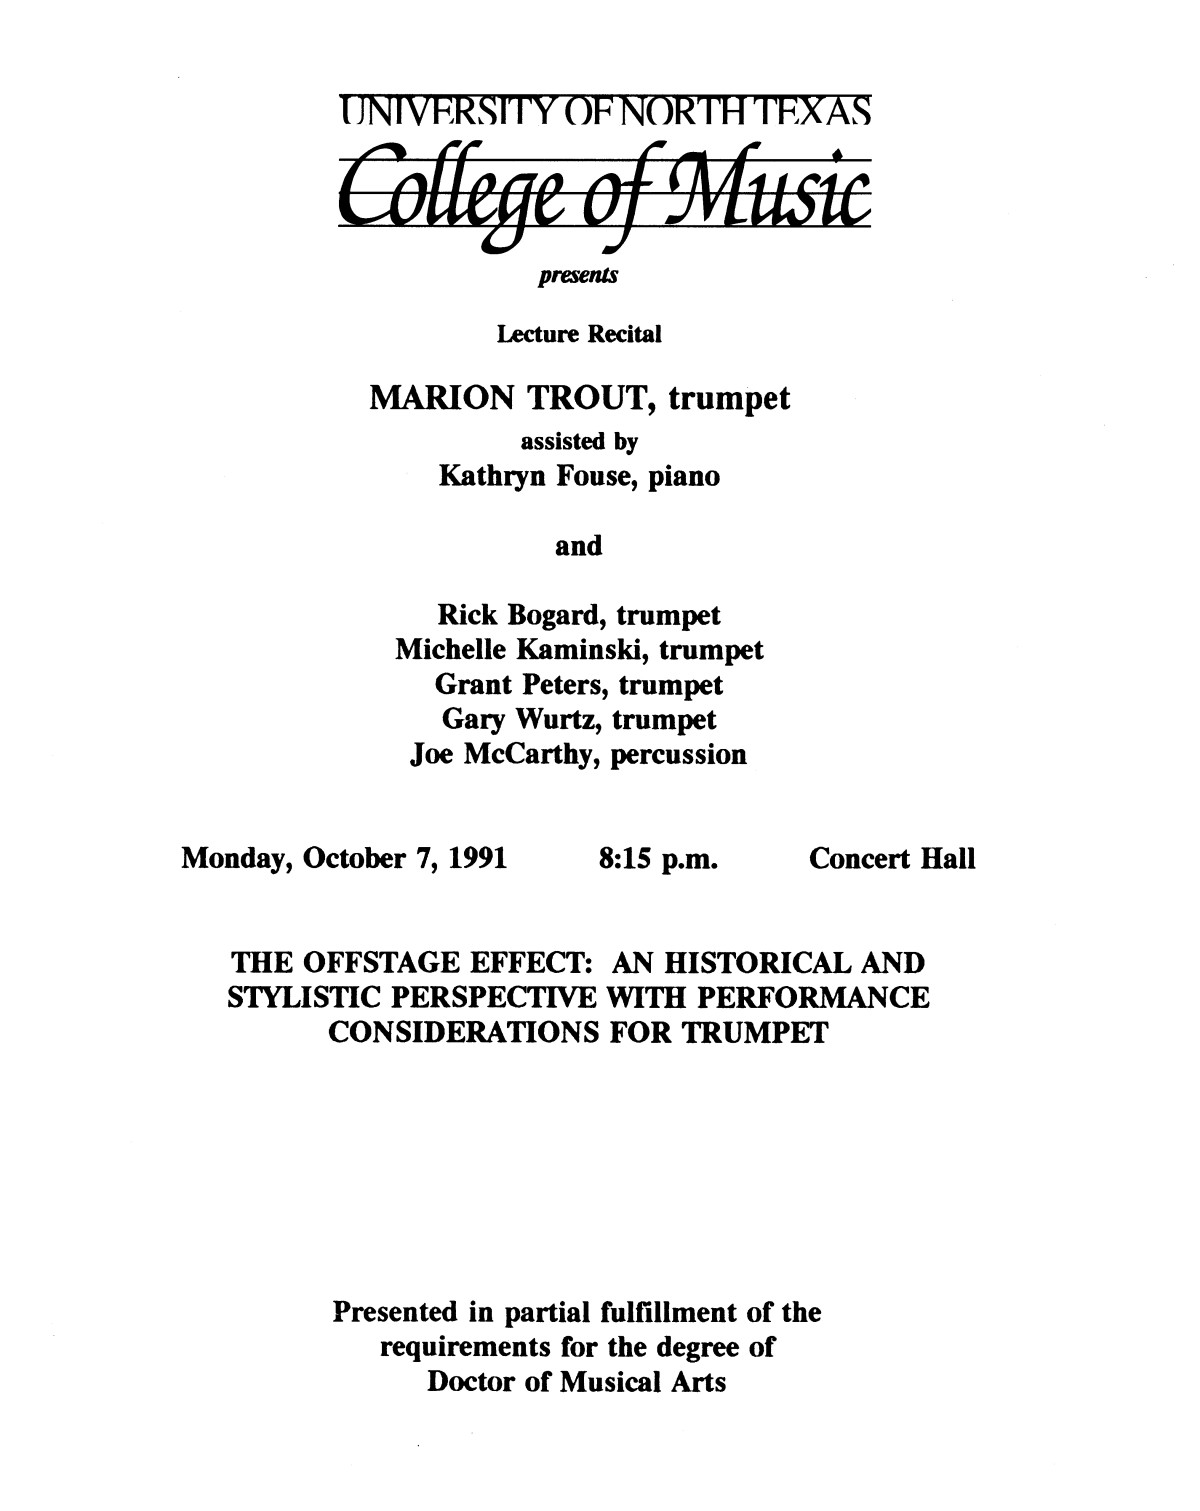 College of Music program book 1991-1992 Student Performances Vol. 2                                                                                                      [Sequence #]: 16 of 310